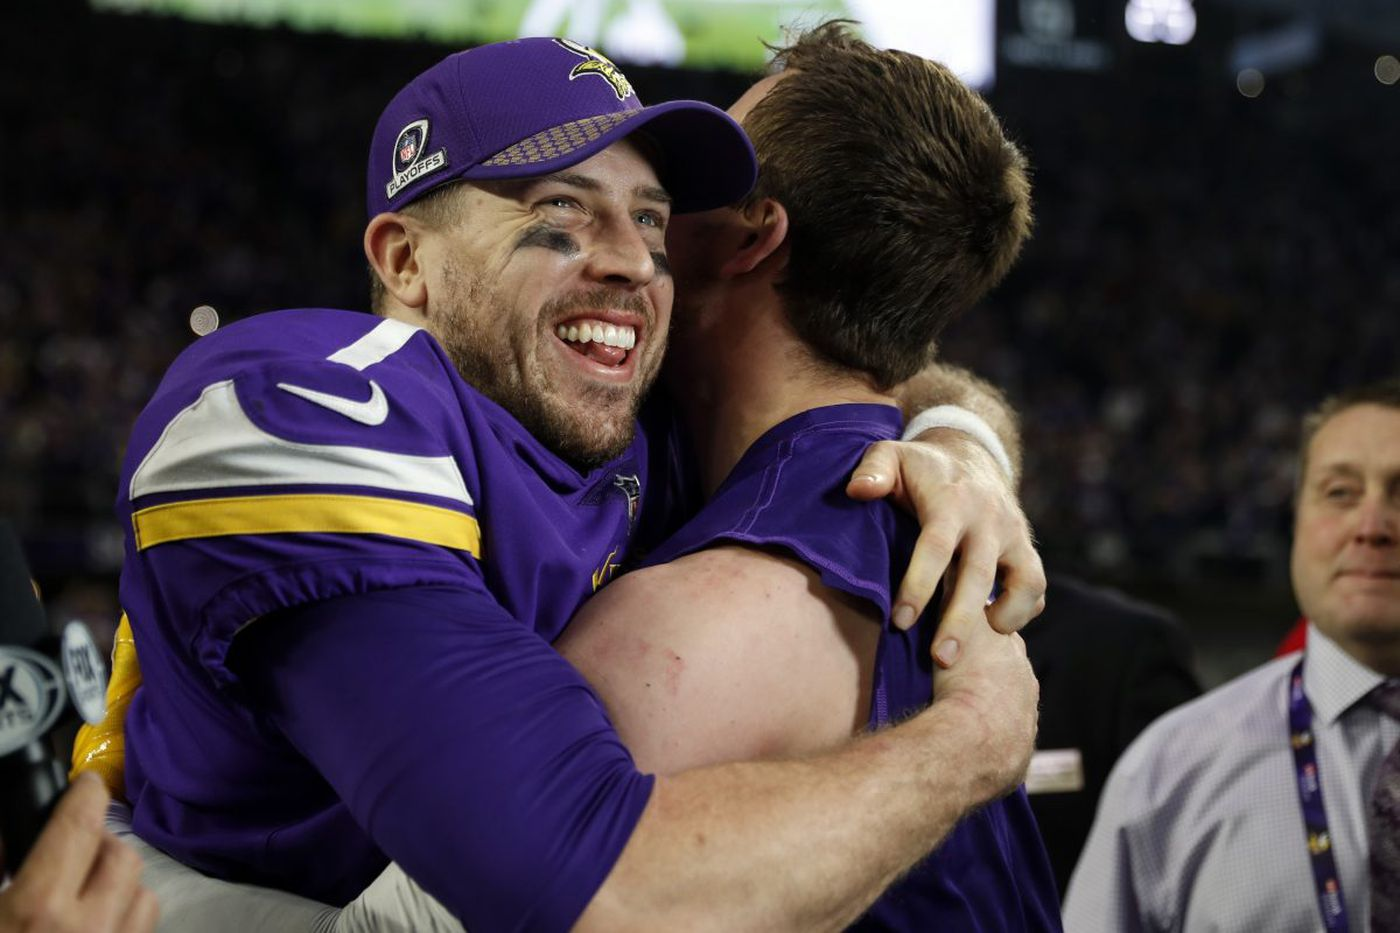 Eagles who've played with Case Keenum marvel at his journey to NFC title game